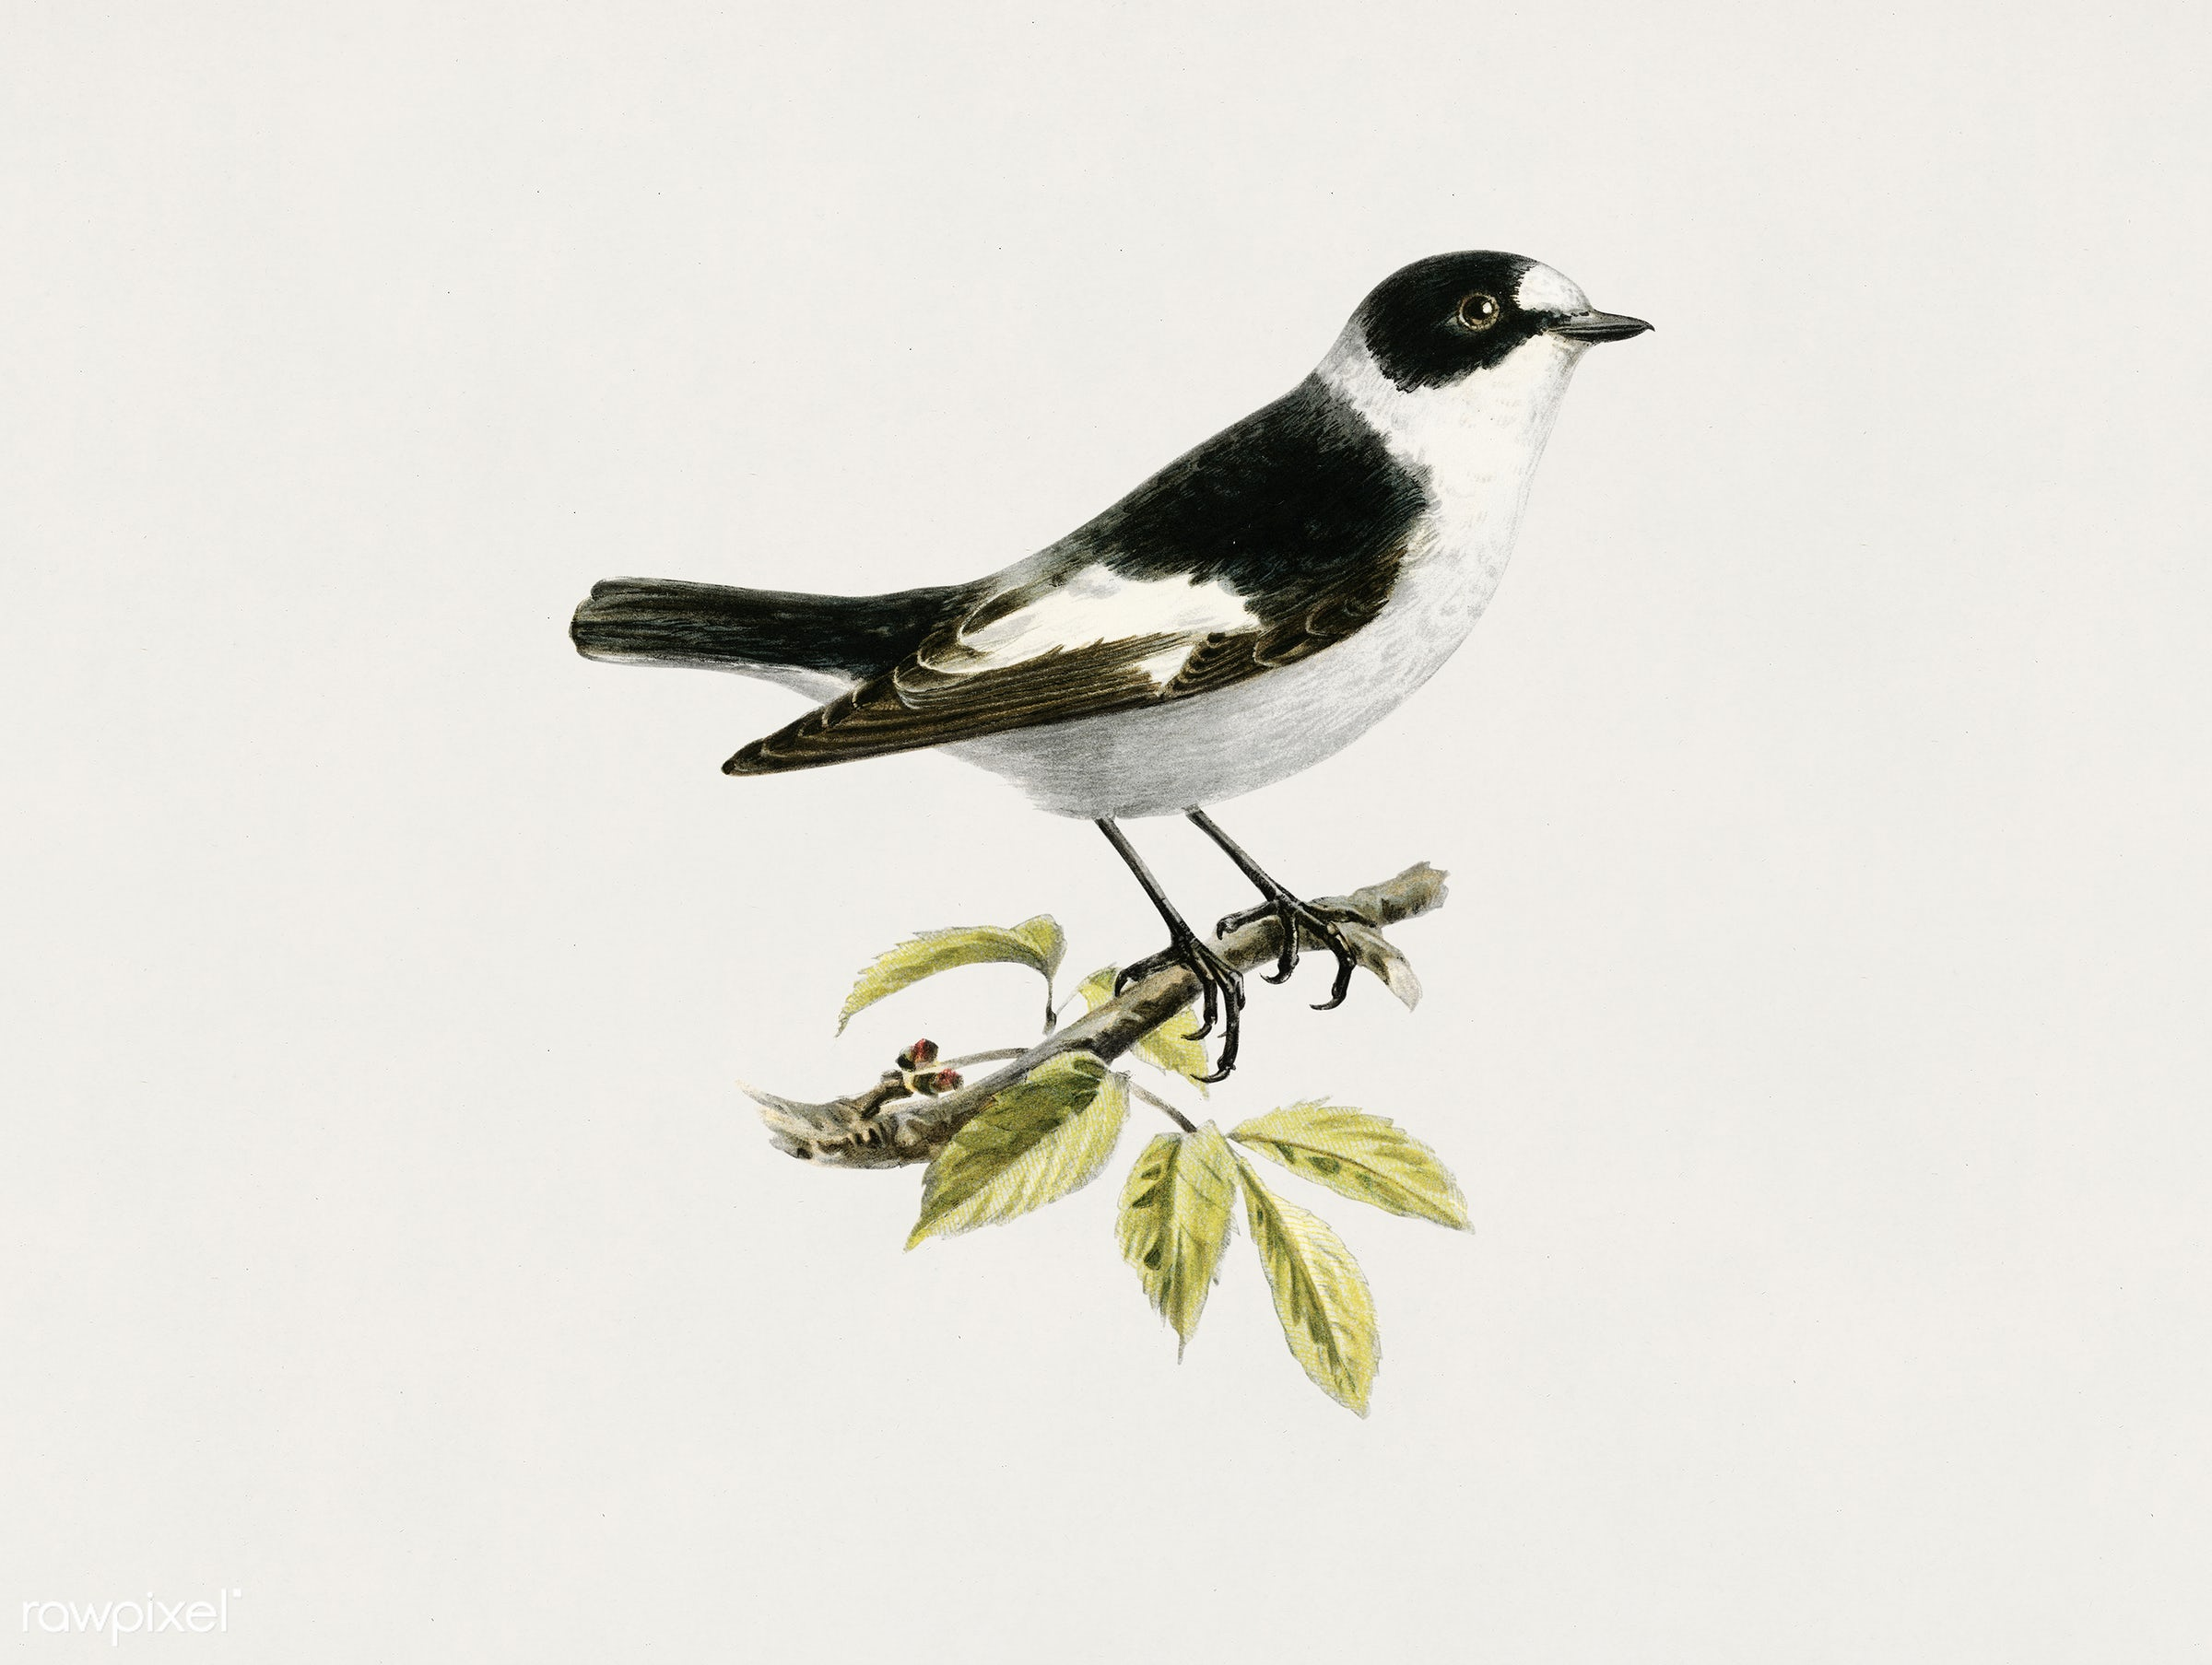 Collared flycatcher (Muscicapa collaris) illustrated by the von Wright brothers. Digitally enhanced from our own 1929 folio...